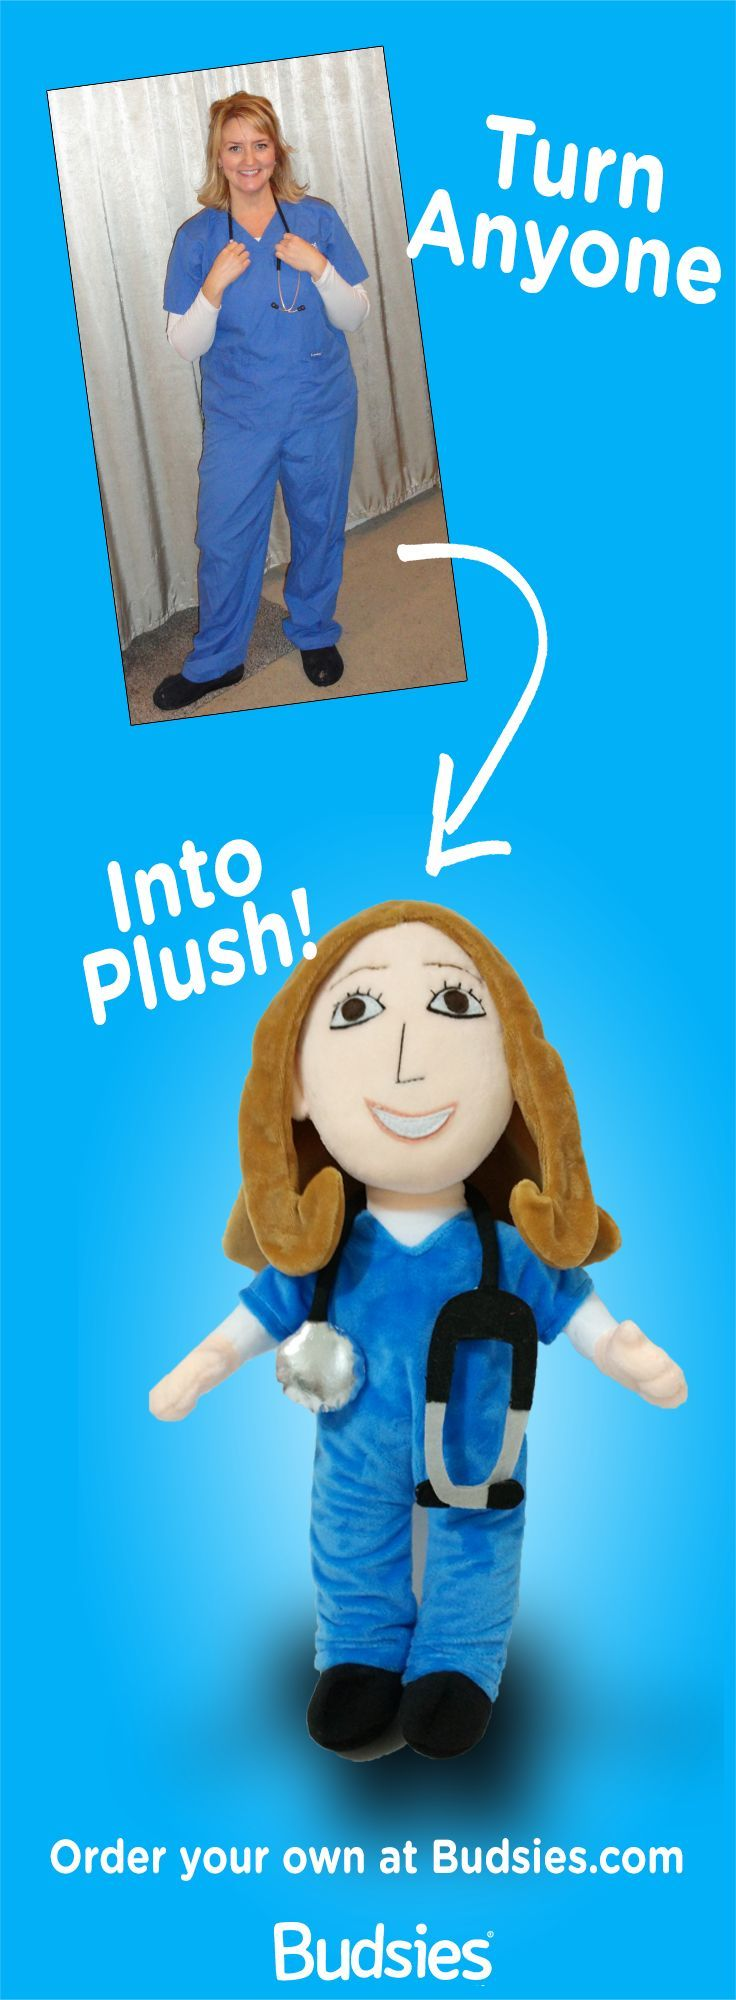 Turn your loved ones into a plush doll. Super simple to order and less expensive than an American Girl doll ;) Get yours at Budsies.com: